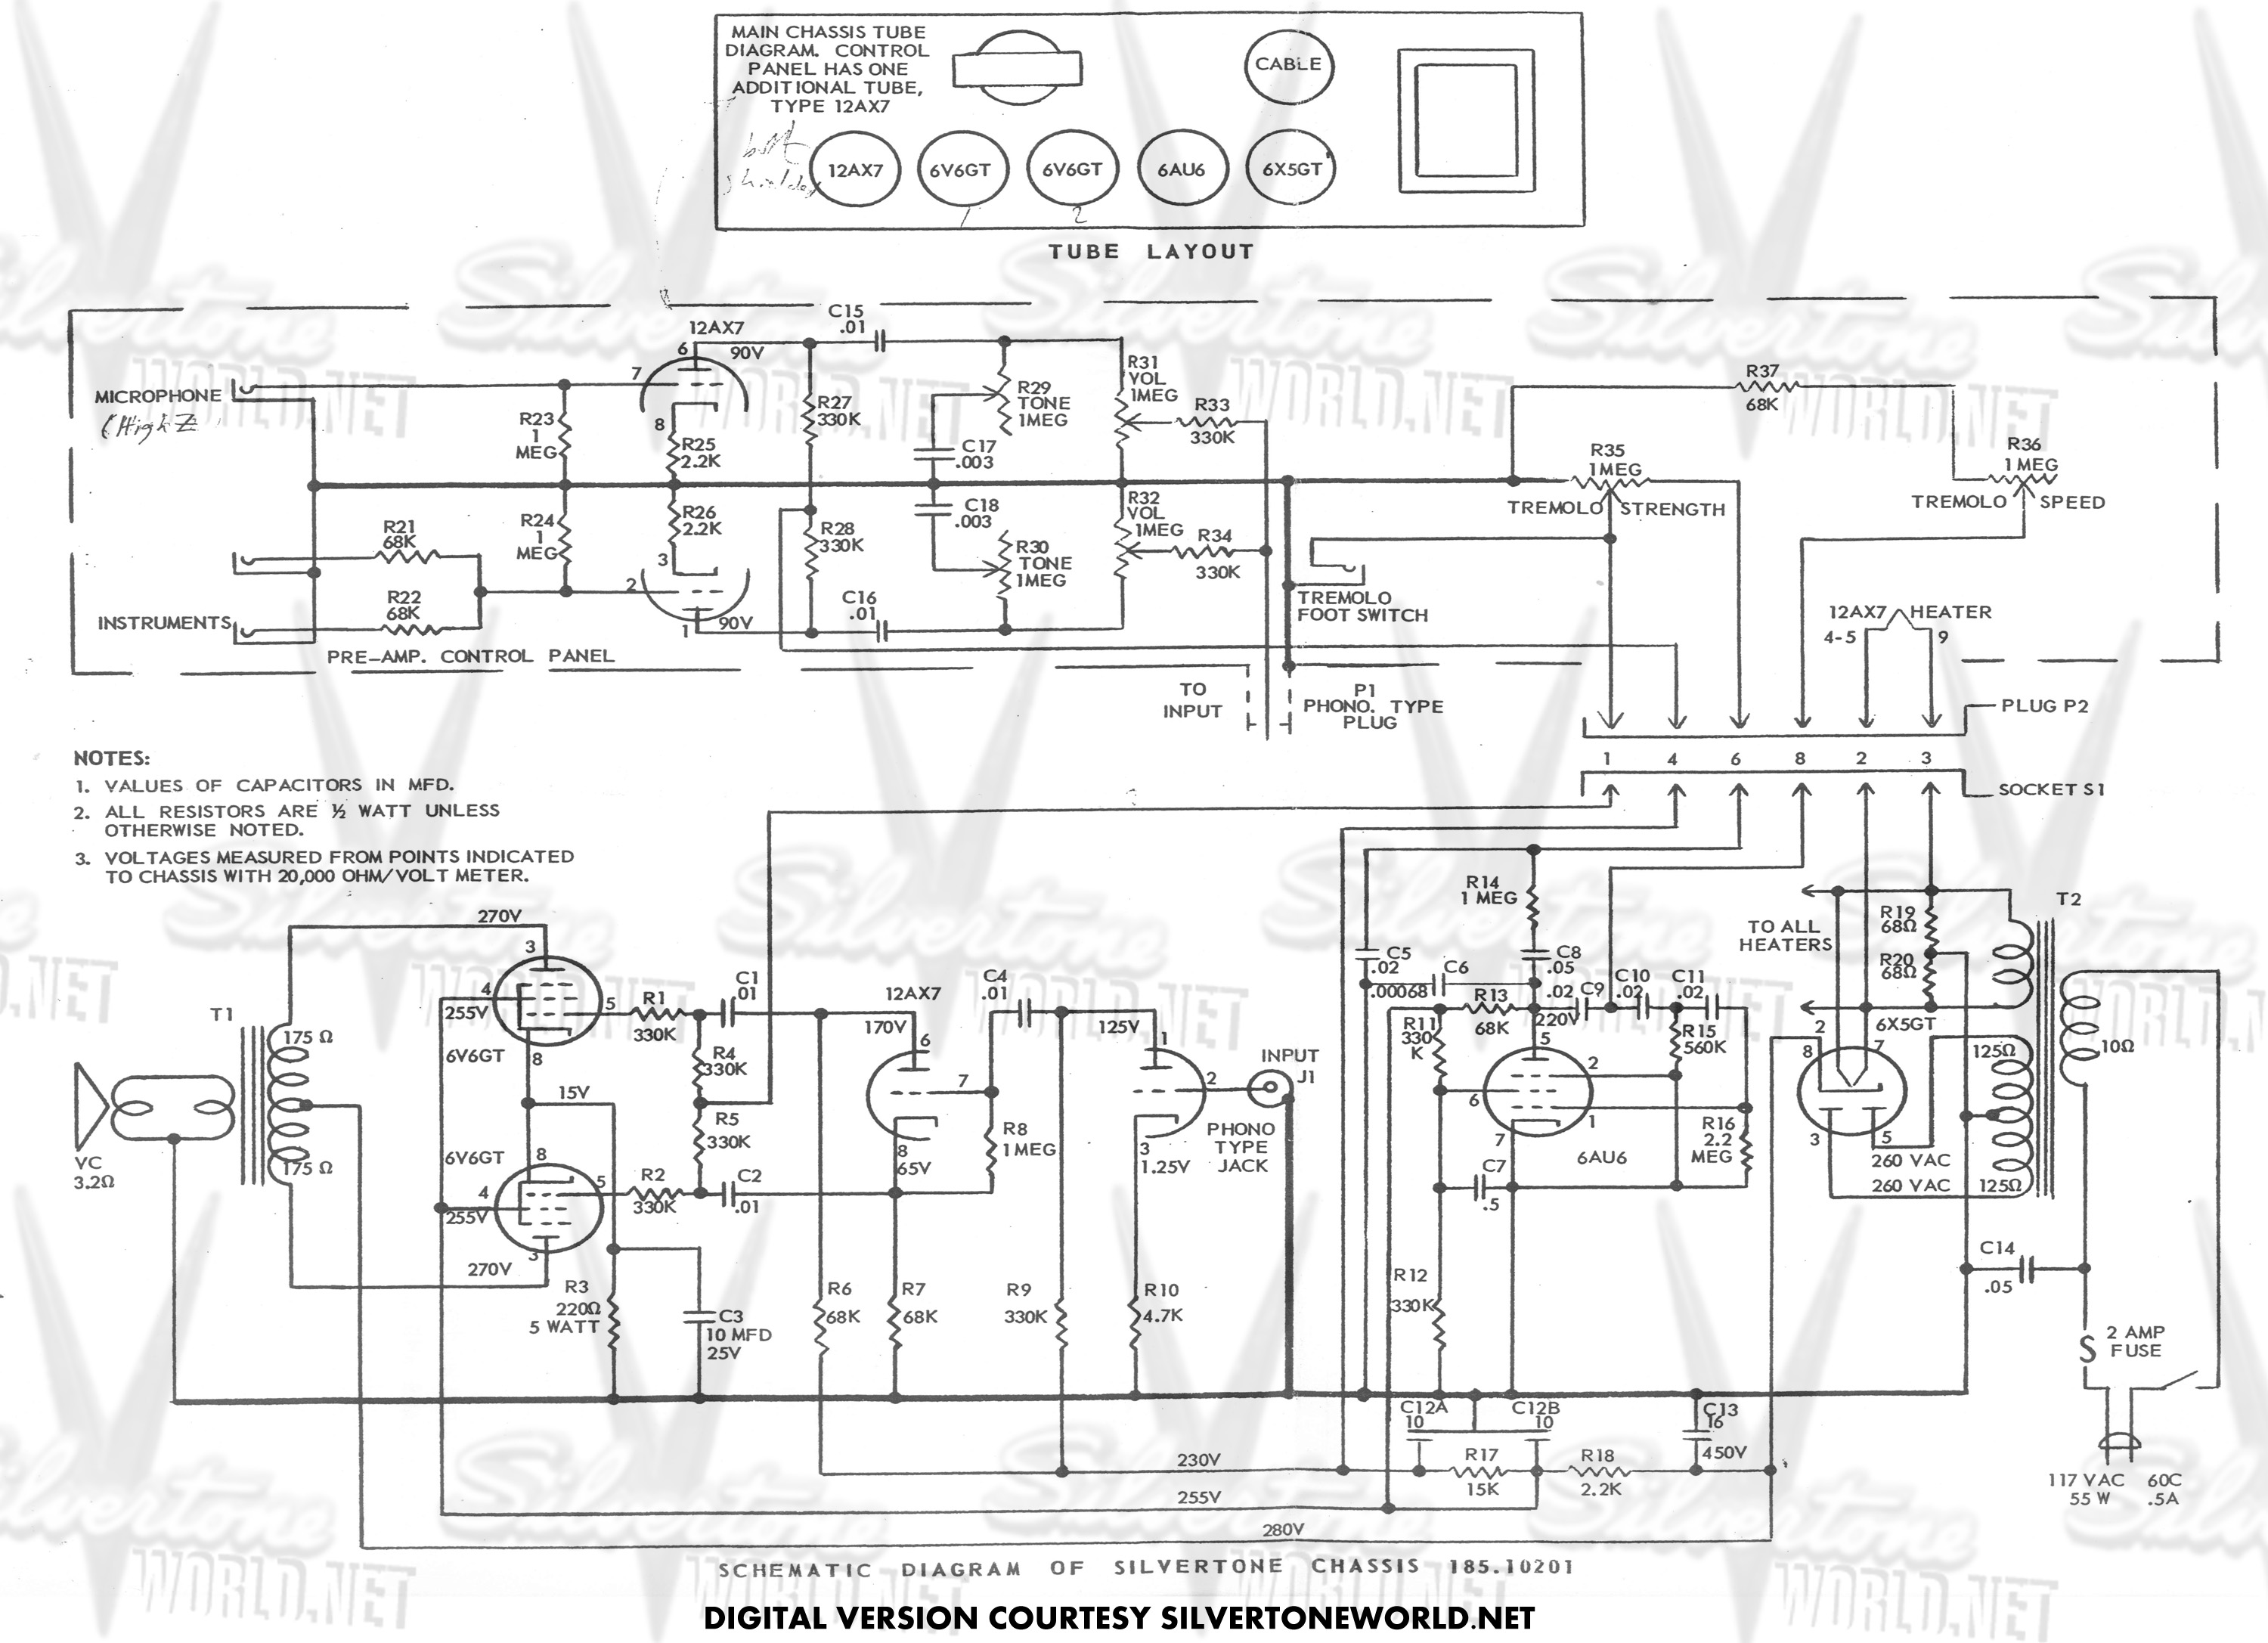 Gretsch Electric Guitar Wiring Diagram Great Installation Of Moreover Gibson 335 Diagrams Also Silvertone Simple Rh 73 Mara Cujas De Pickup